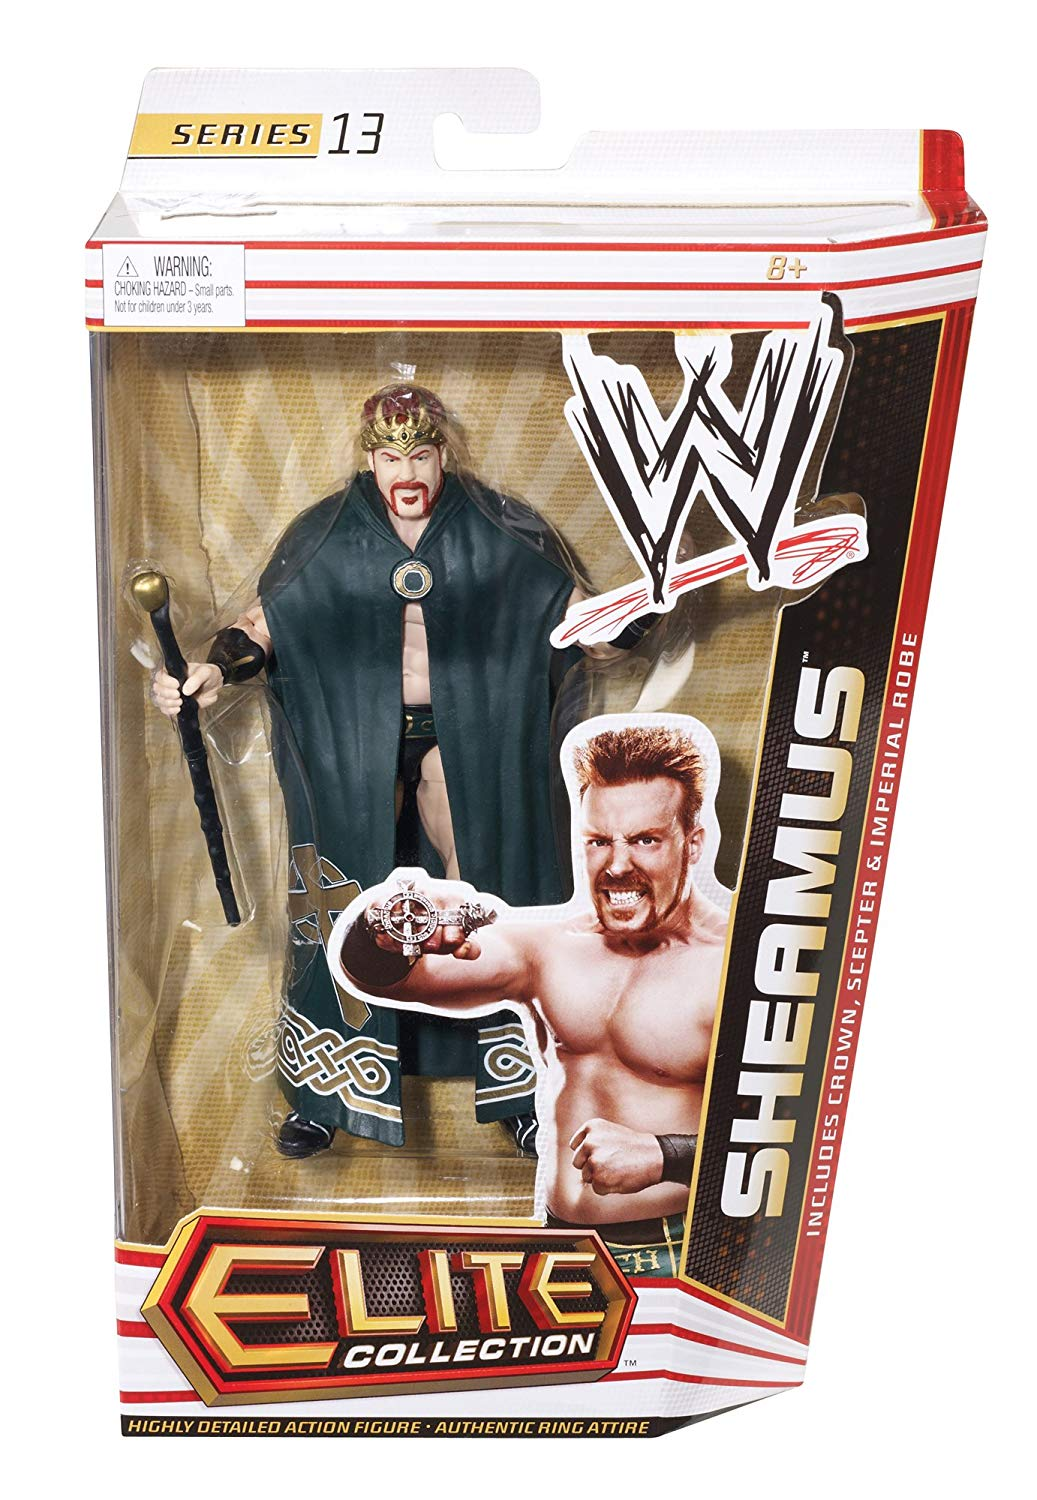 WWE Elite Collection Serie 13 (2011) Truc639